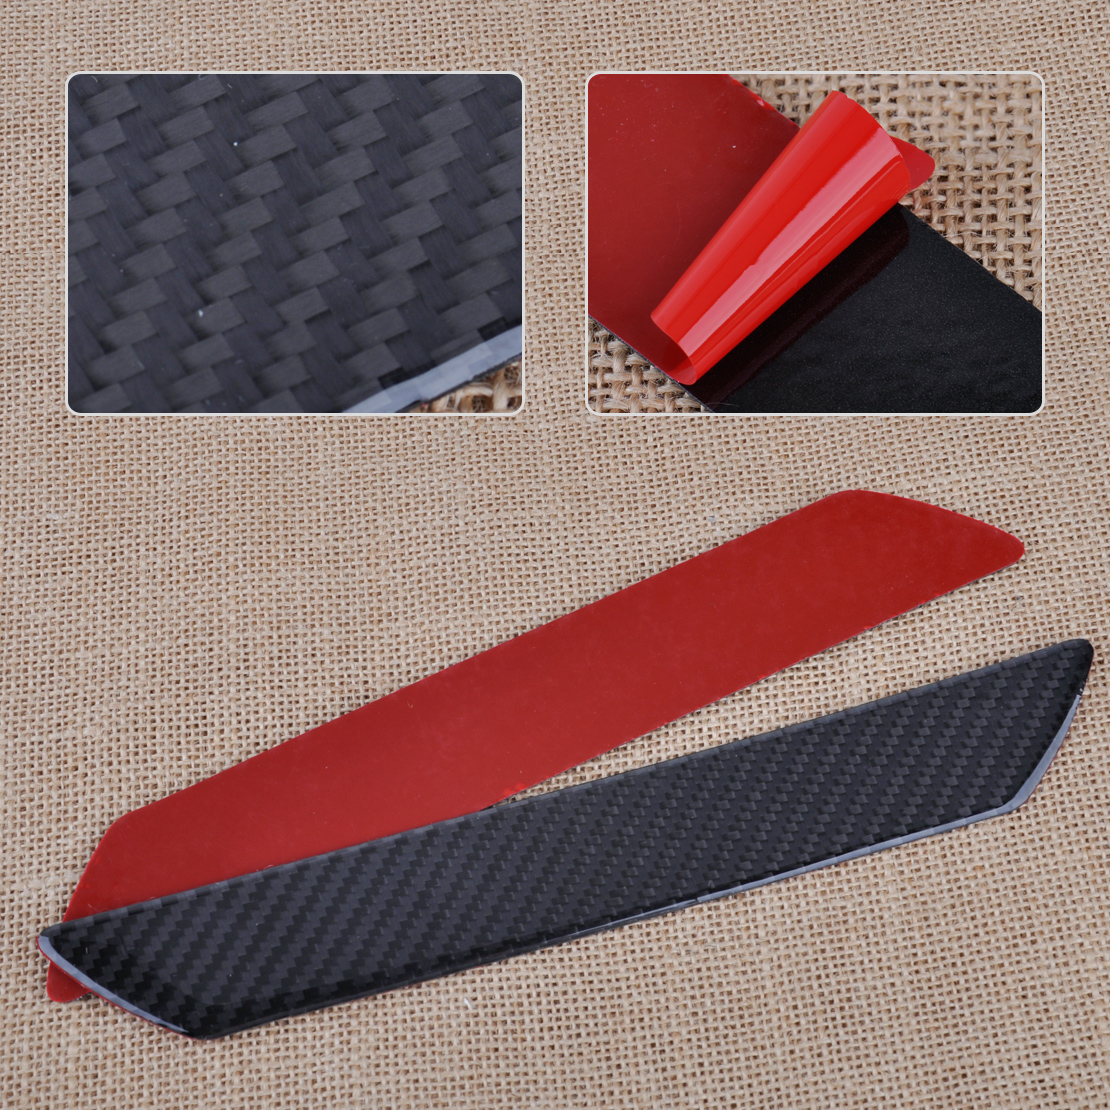 CITALL 2PCS Car-styling Carbon Fiber Door Step Scuff Plate Sill Plate Cover Panel Guard Protect Trim for Ford Mazda VW Audi BMW